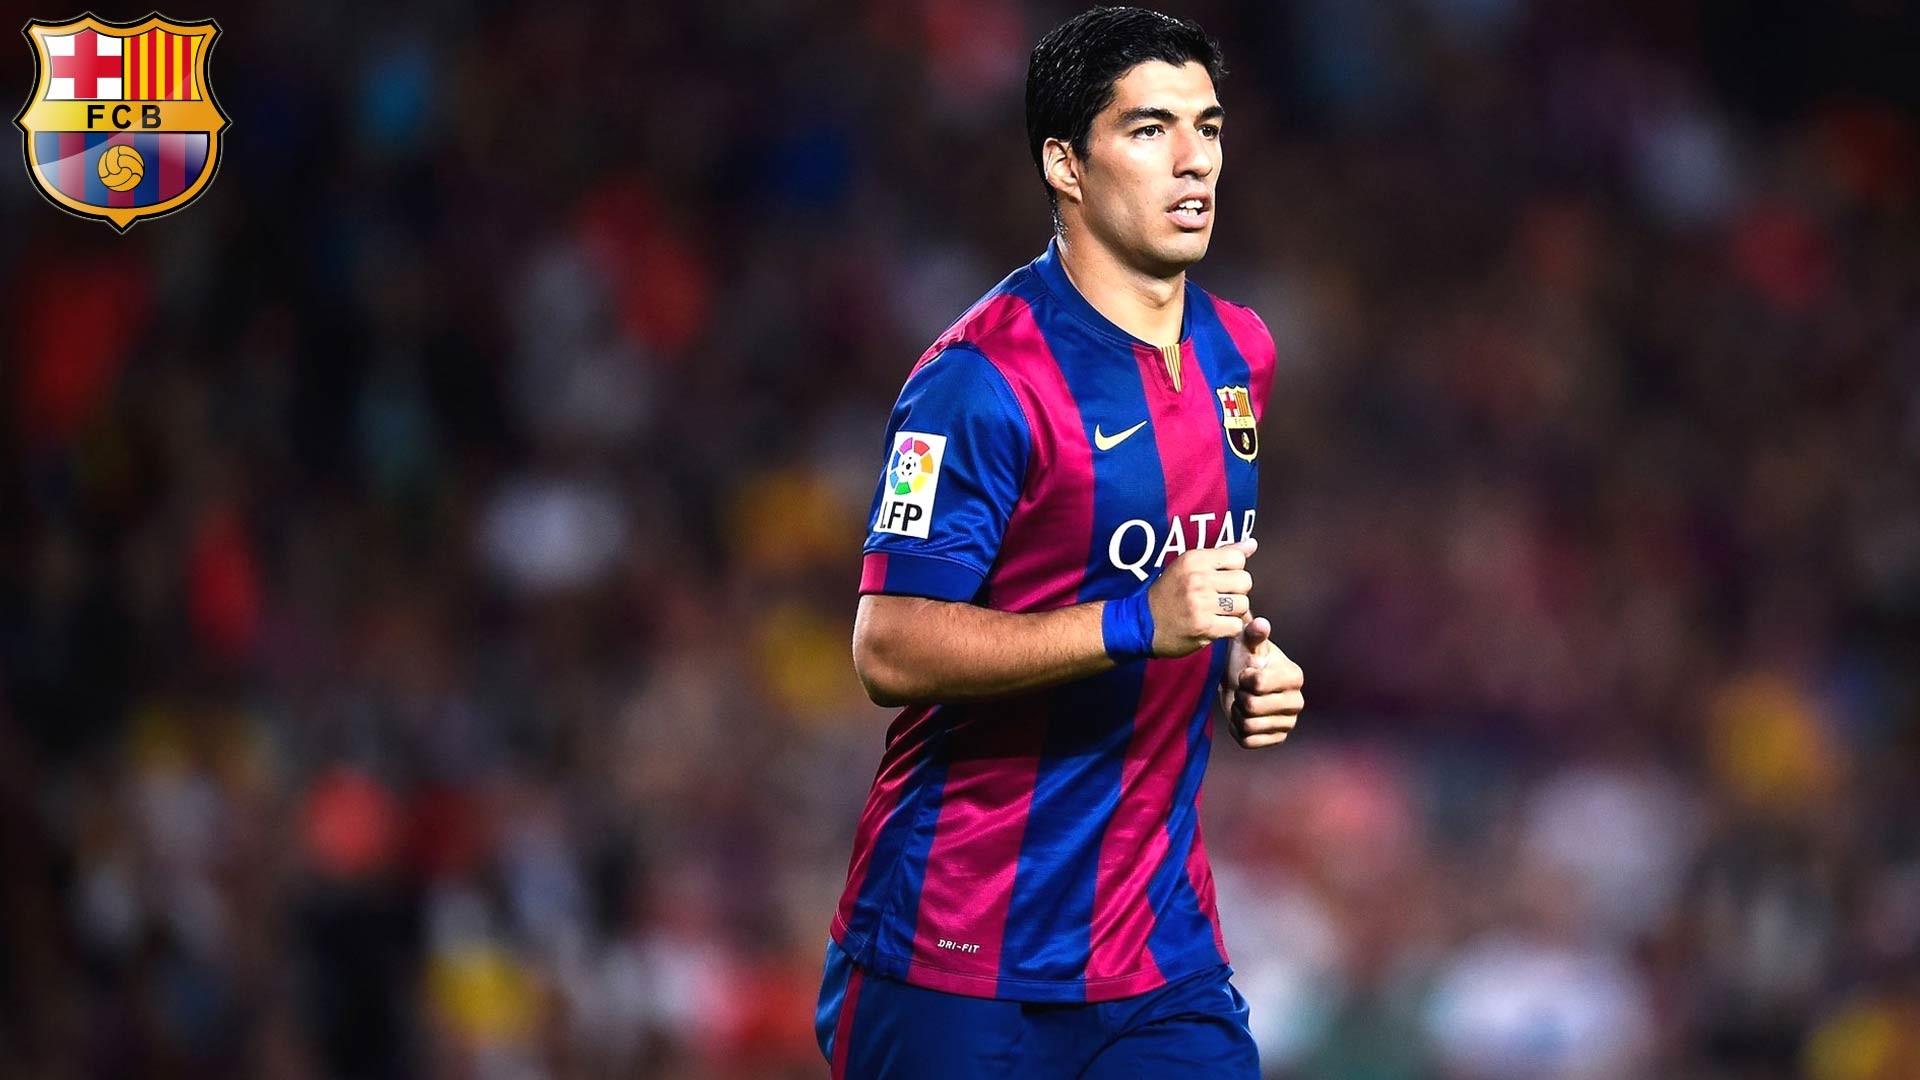 Luis Suarez, FC Barcelona – Full HD Wallpaper. ImgPrix.com – High  Definition Wallpapers and Covers   Sports HD Wallpapers   Pinterest   FC  Barcelona, …